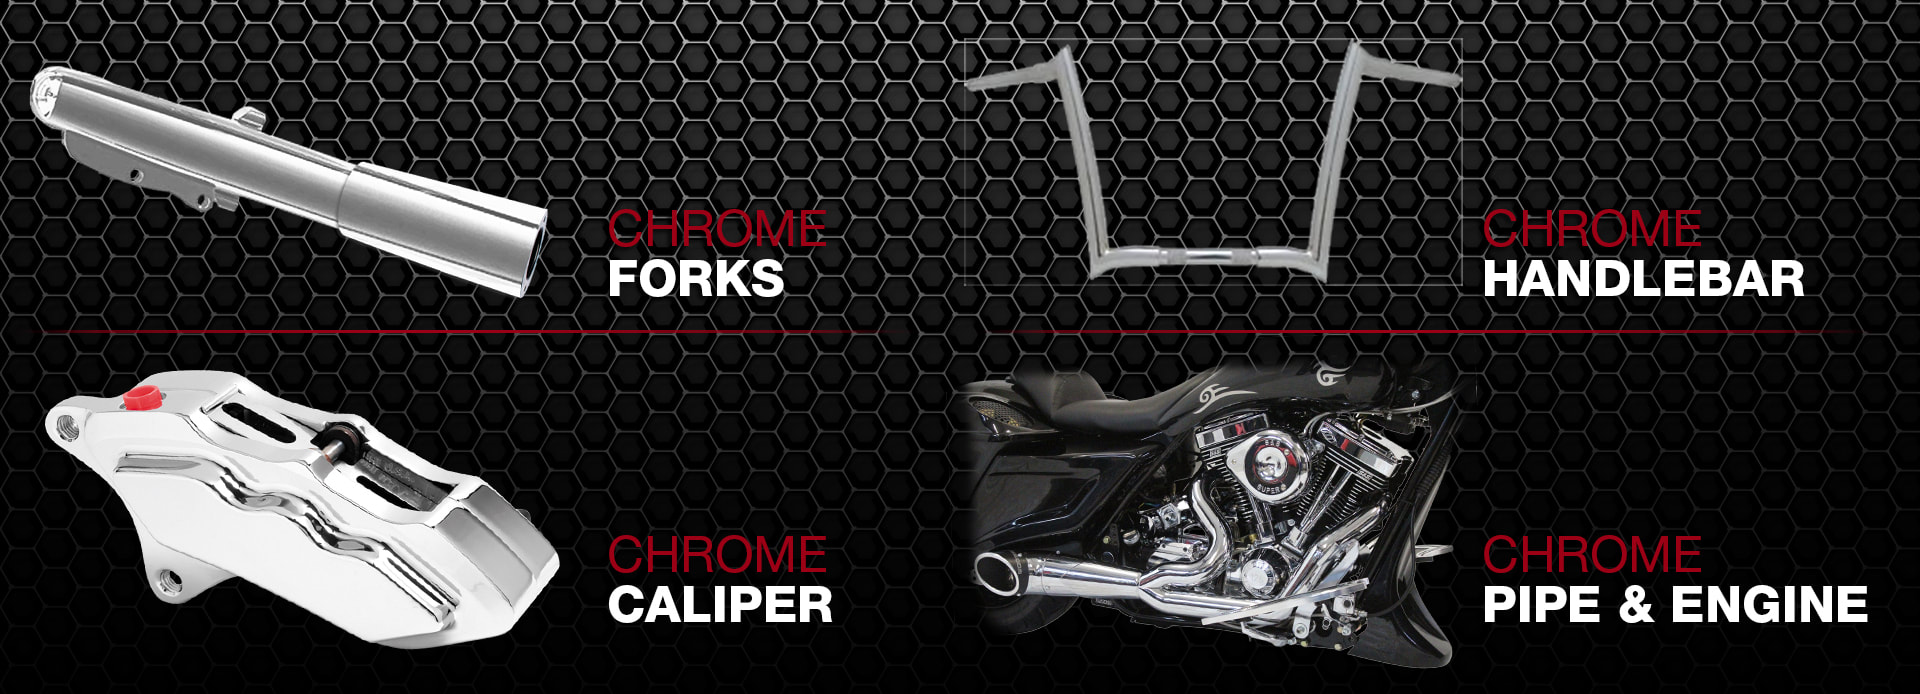 Havoc Motorcycles custom bagger options